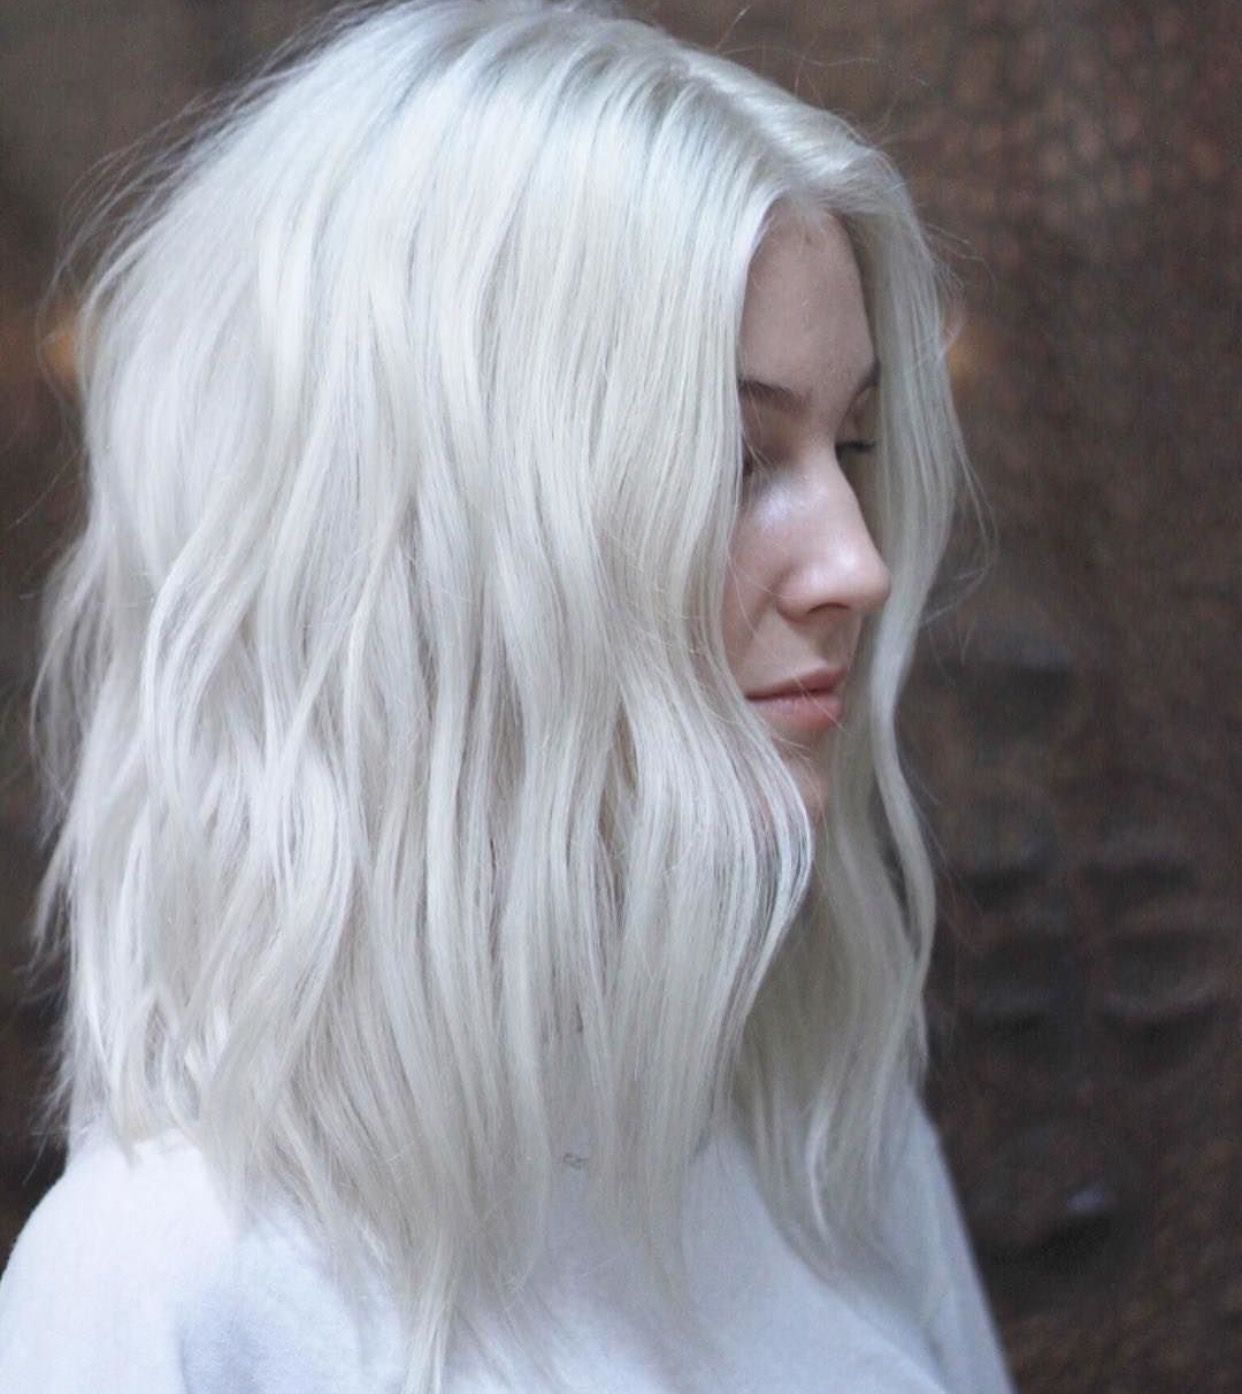 Pin by Katelyn Ratajczak on blonde? | Pinterest | Hair coloring ...